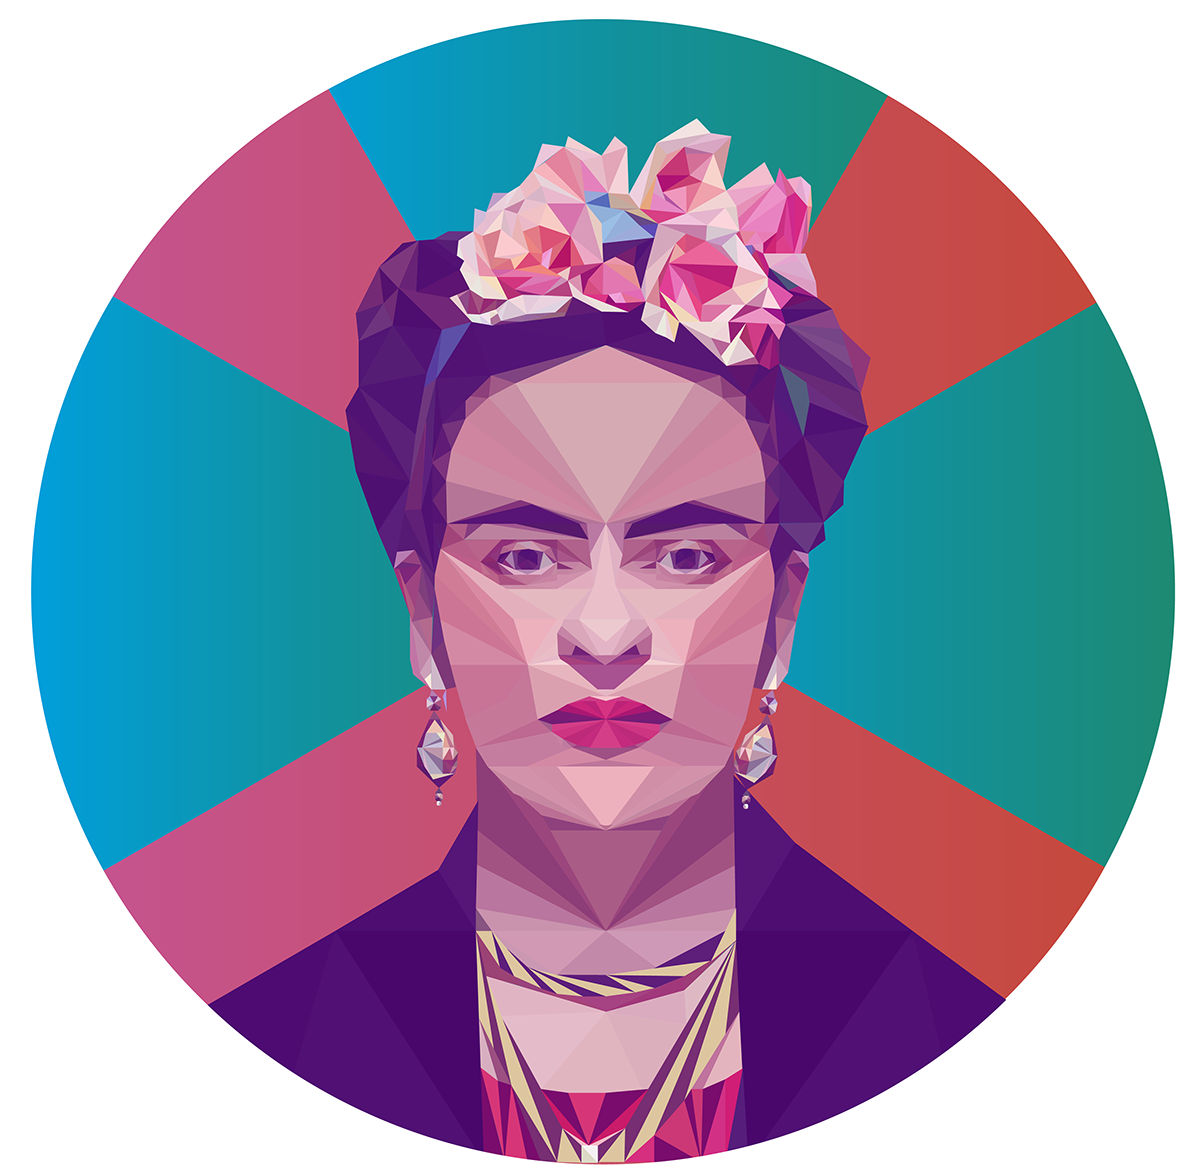 colossal madethis lowpoly portraits fkatwigs salvadordali ANDYWARHOL Chaplin fridakahlo bjork AmyWinehouse Ps25Under25 kanyewest